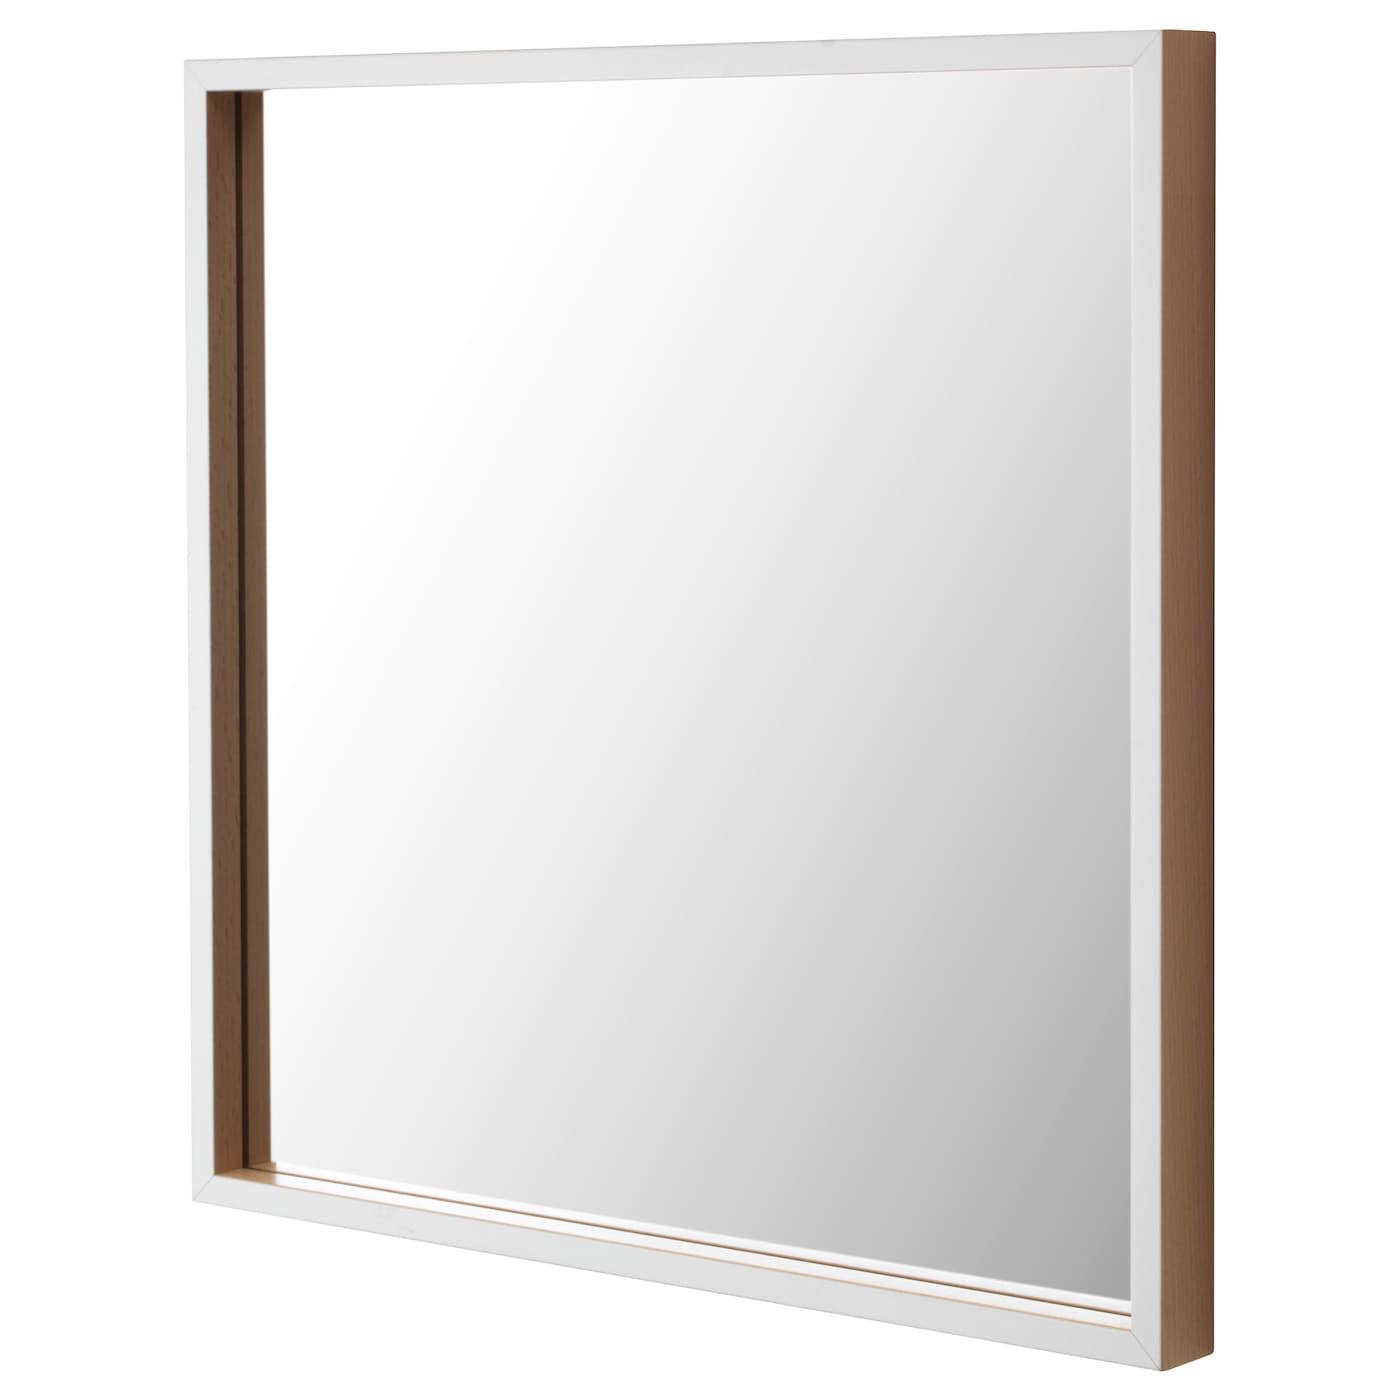 Wall mirrors ikea ireland for Miroir 50x80